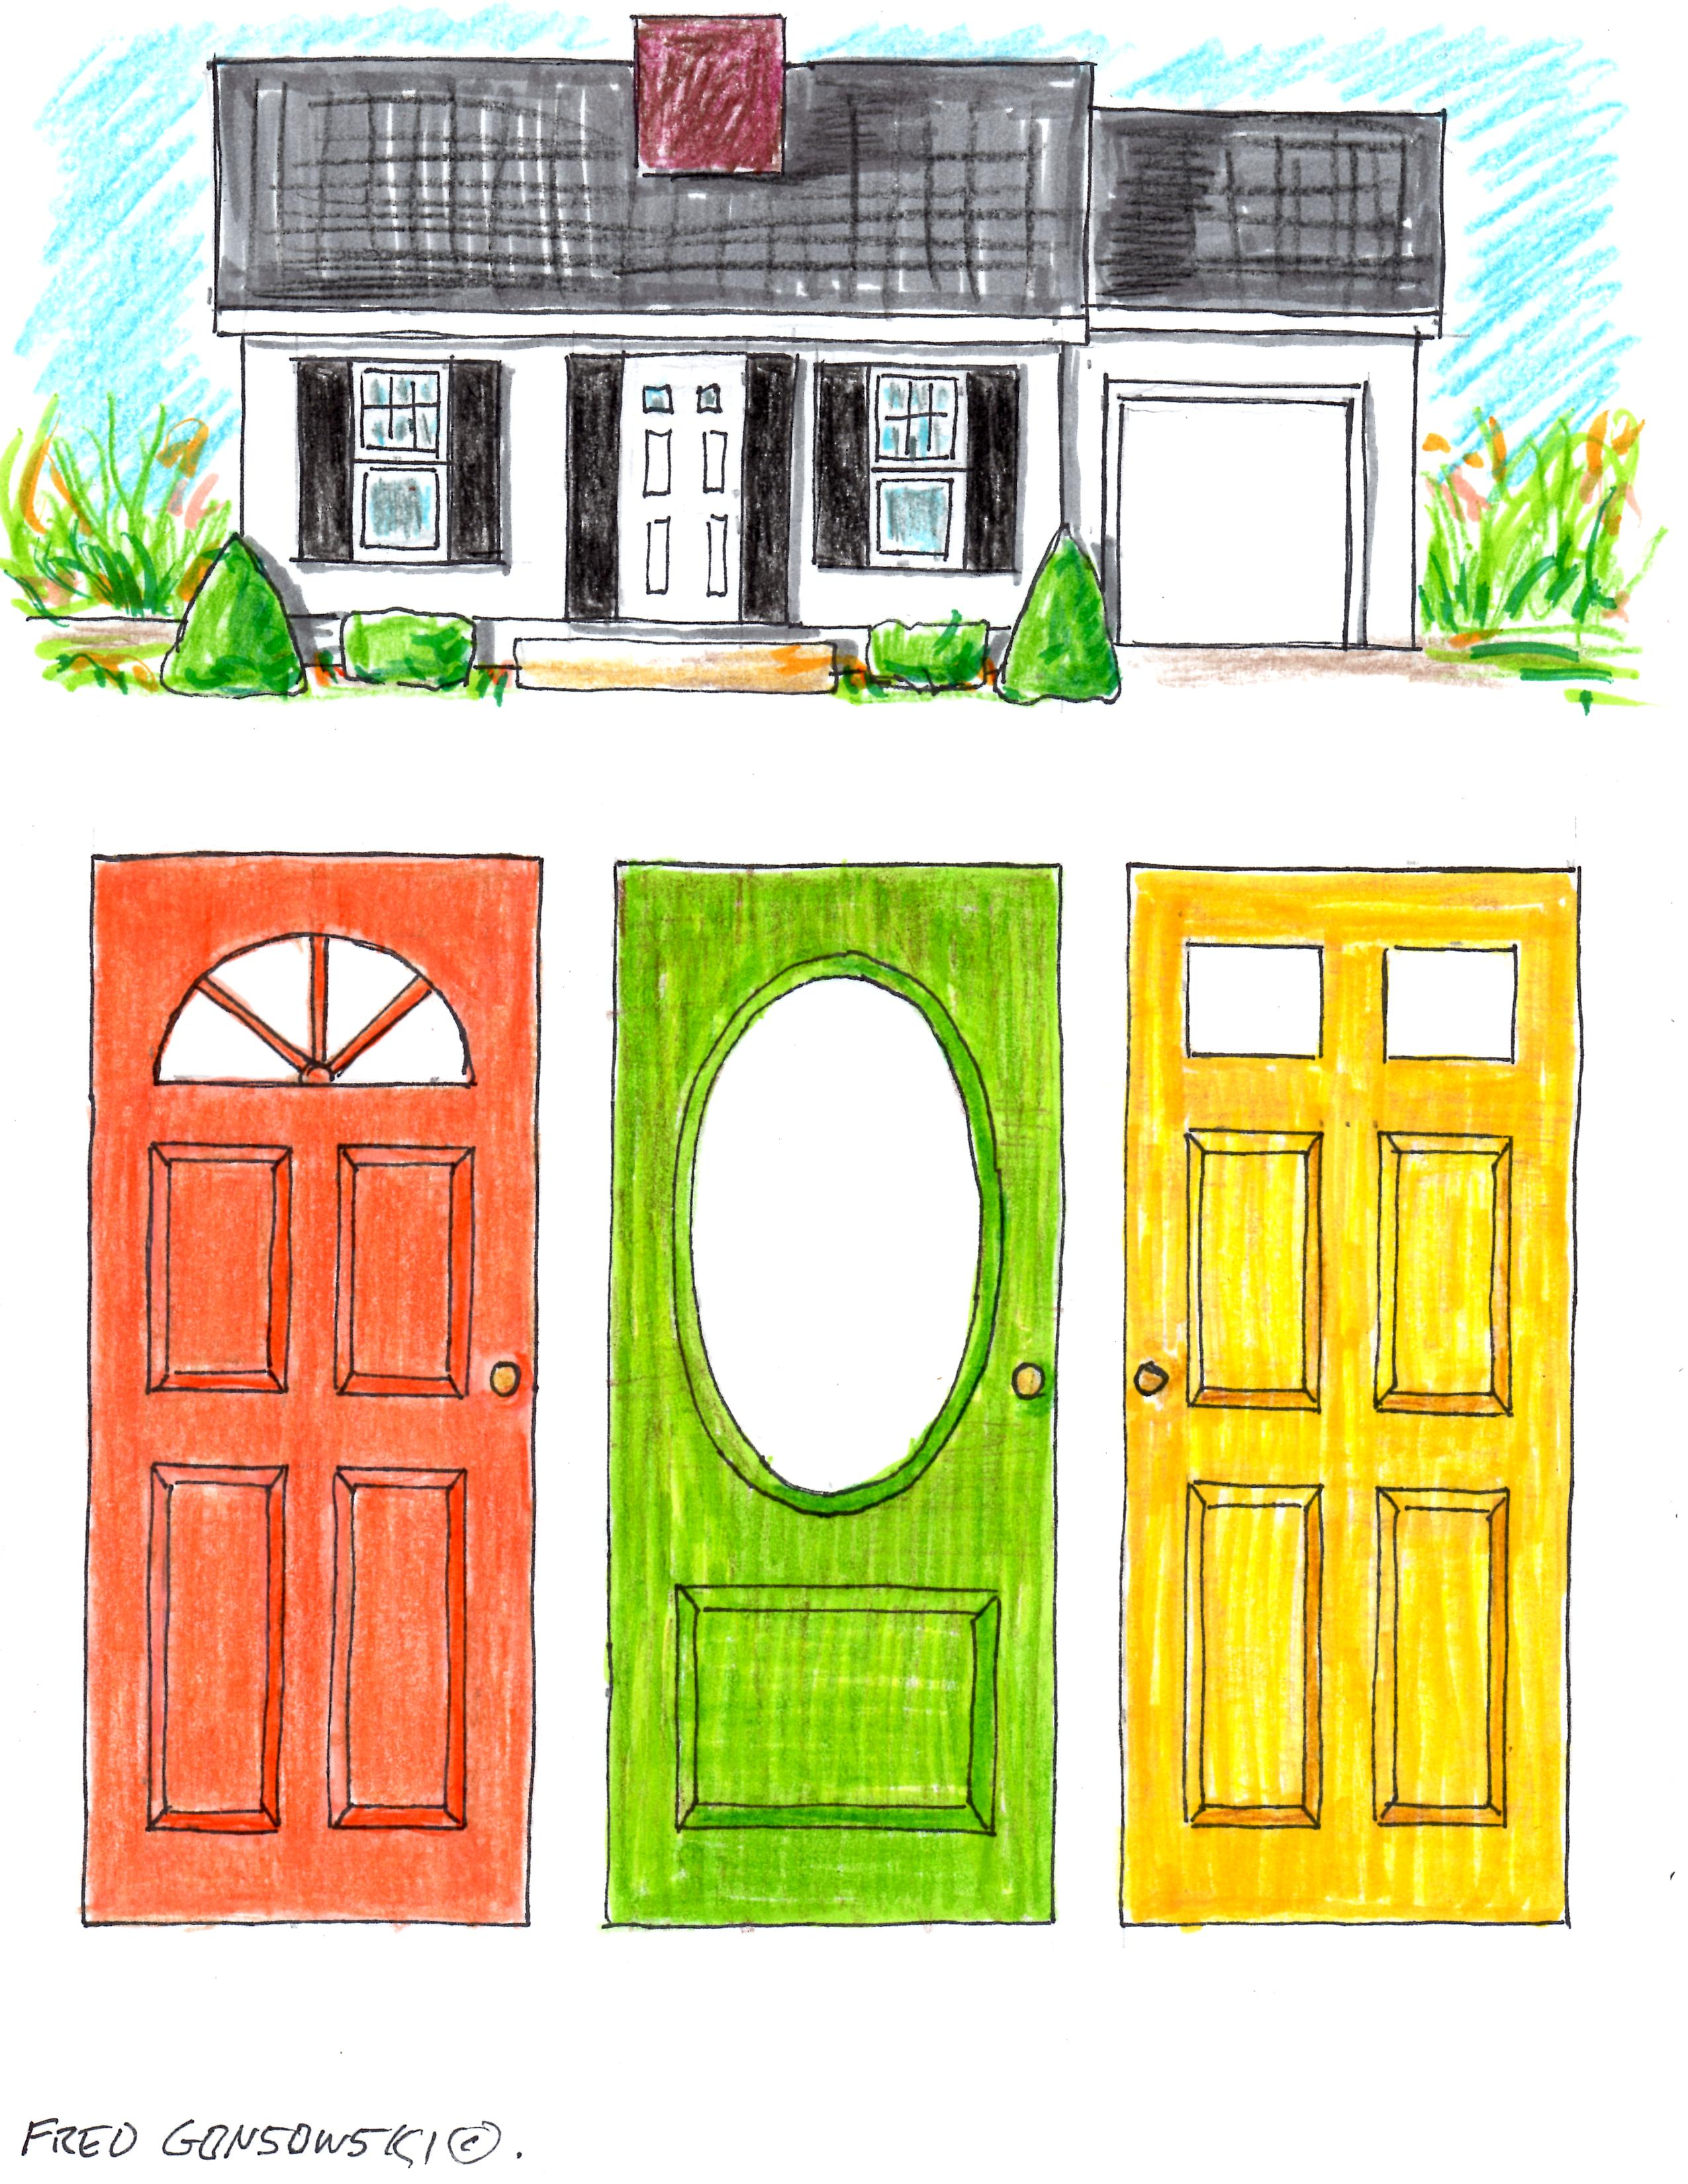 picking a color for your front door | fred gonsowski garden home